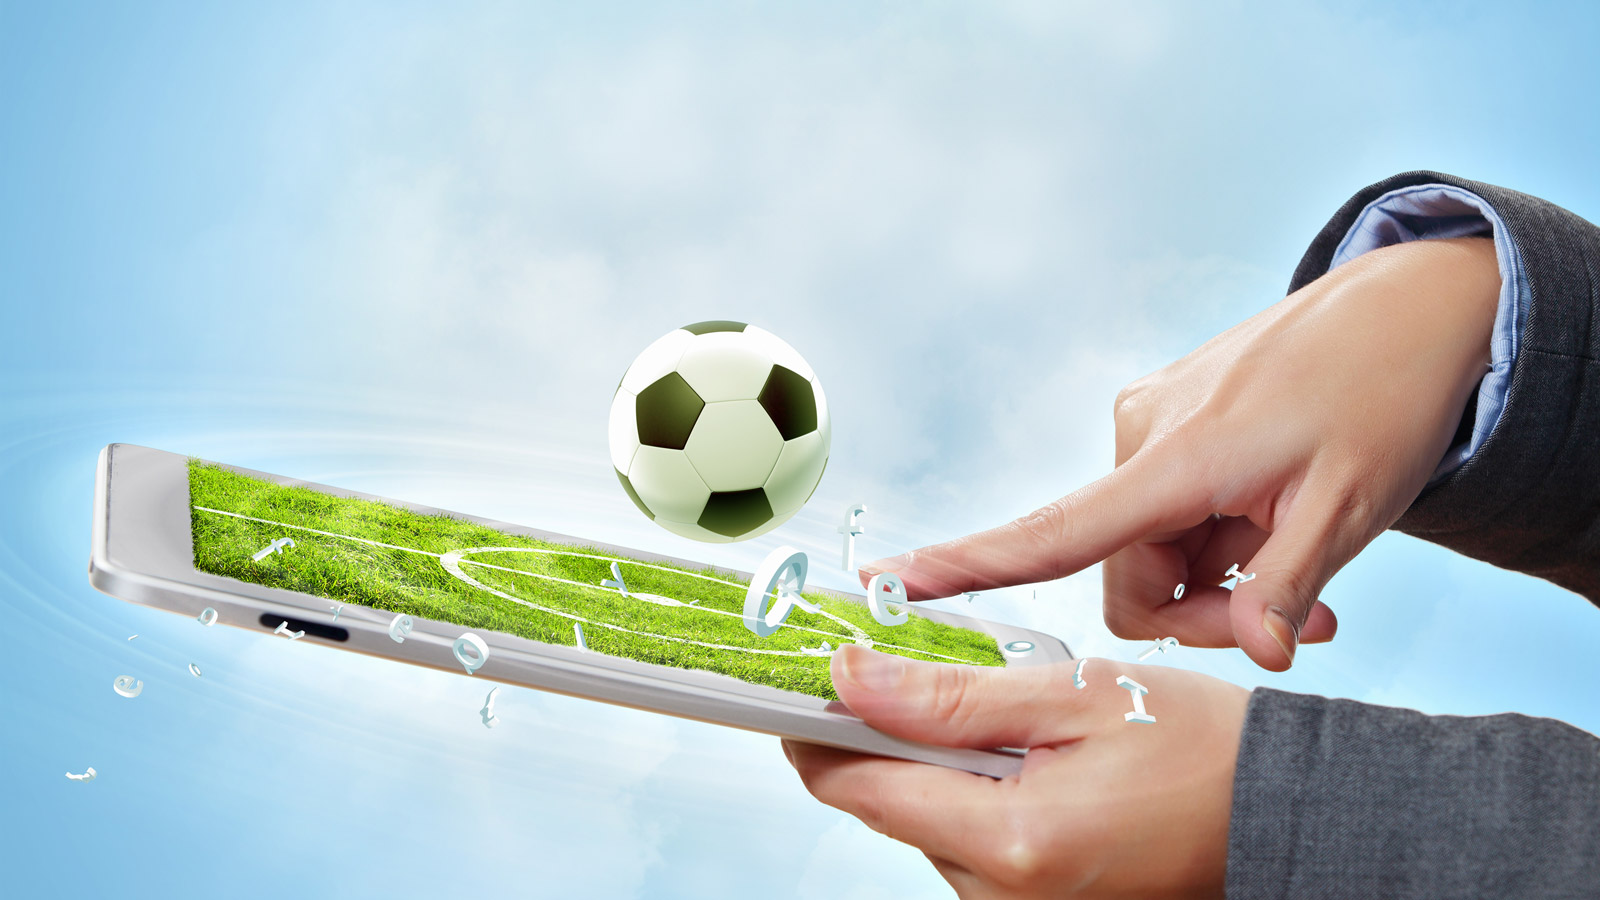 Goal uk betting forum sports betting canada paypal itunes